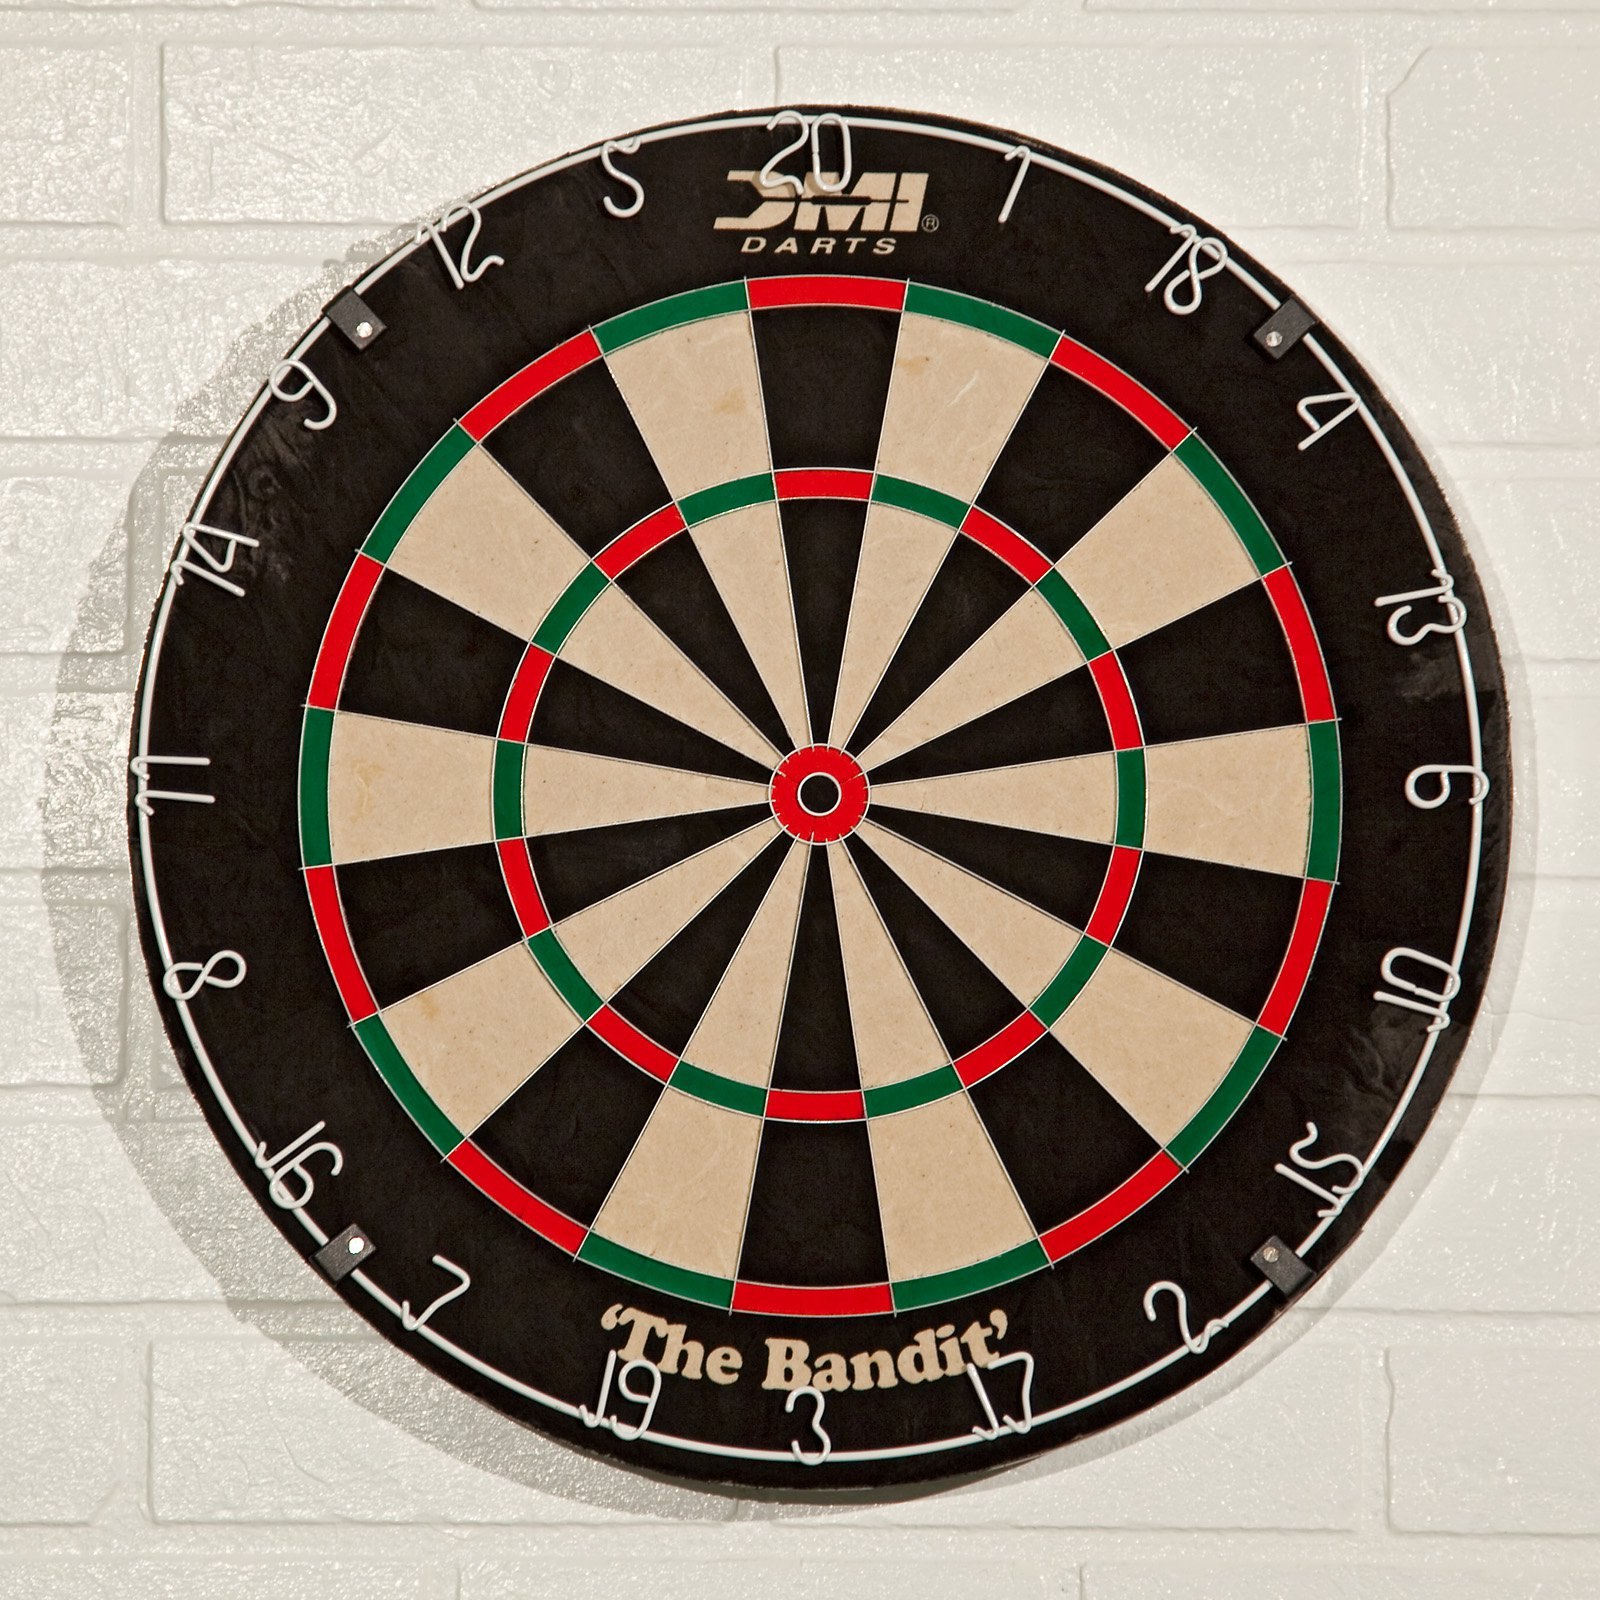 DMI Darts The Bandit Bristle Dart Board by Escalade Sports